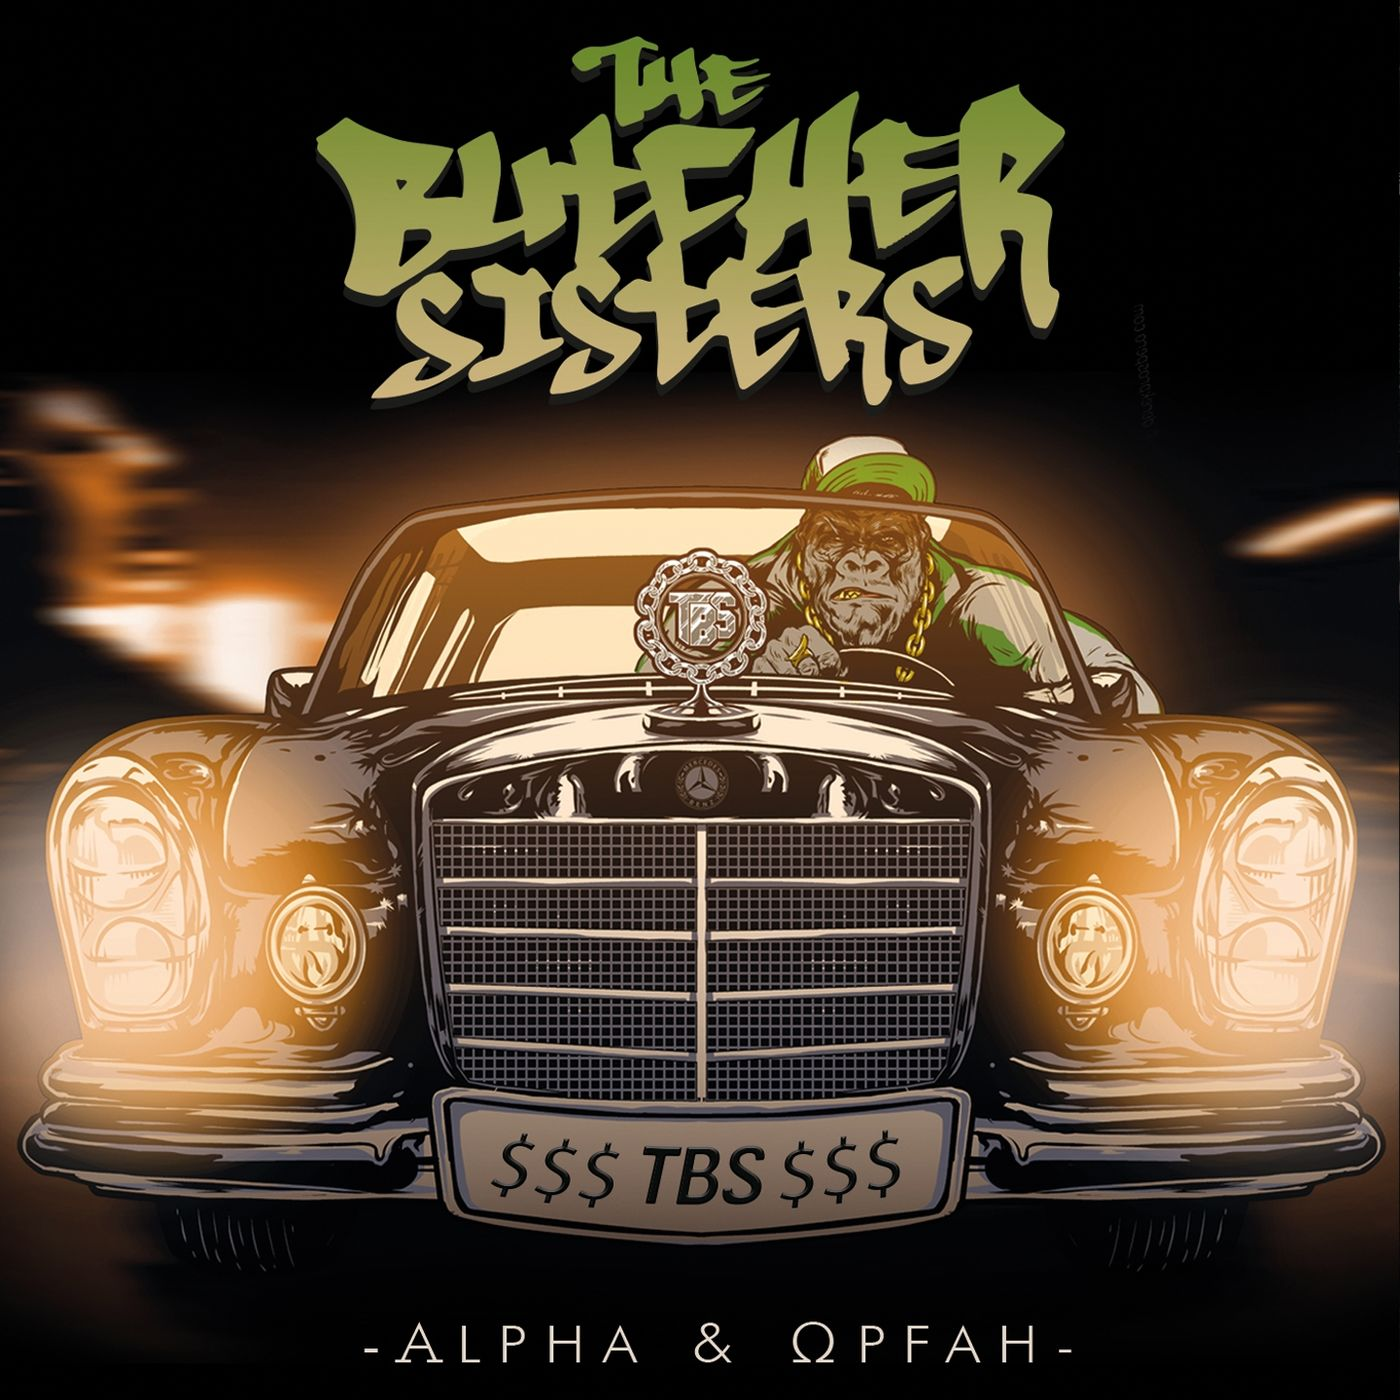 The Butcher Sisters - Alpha & Opfah